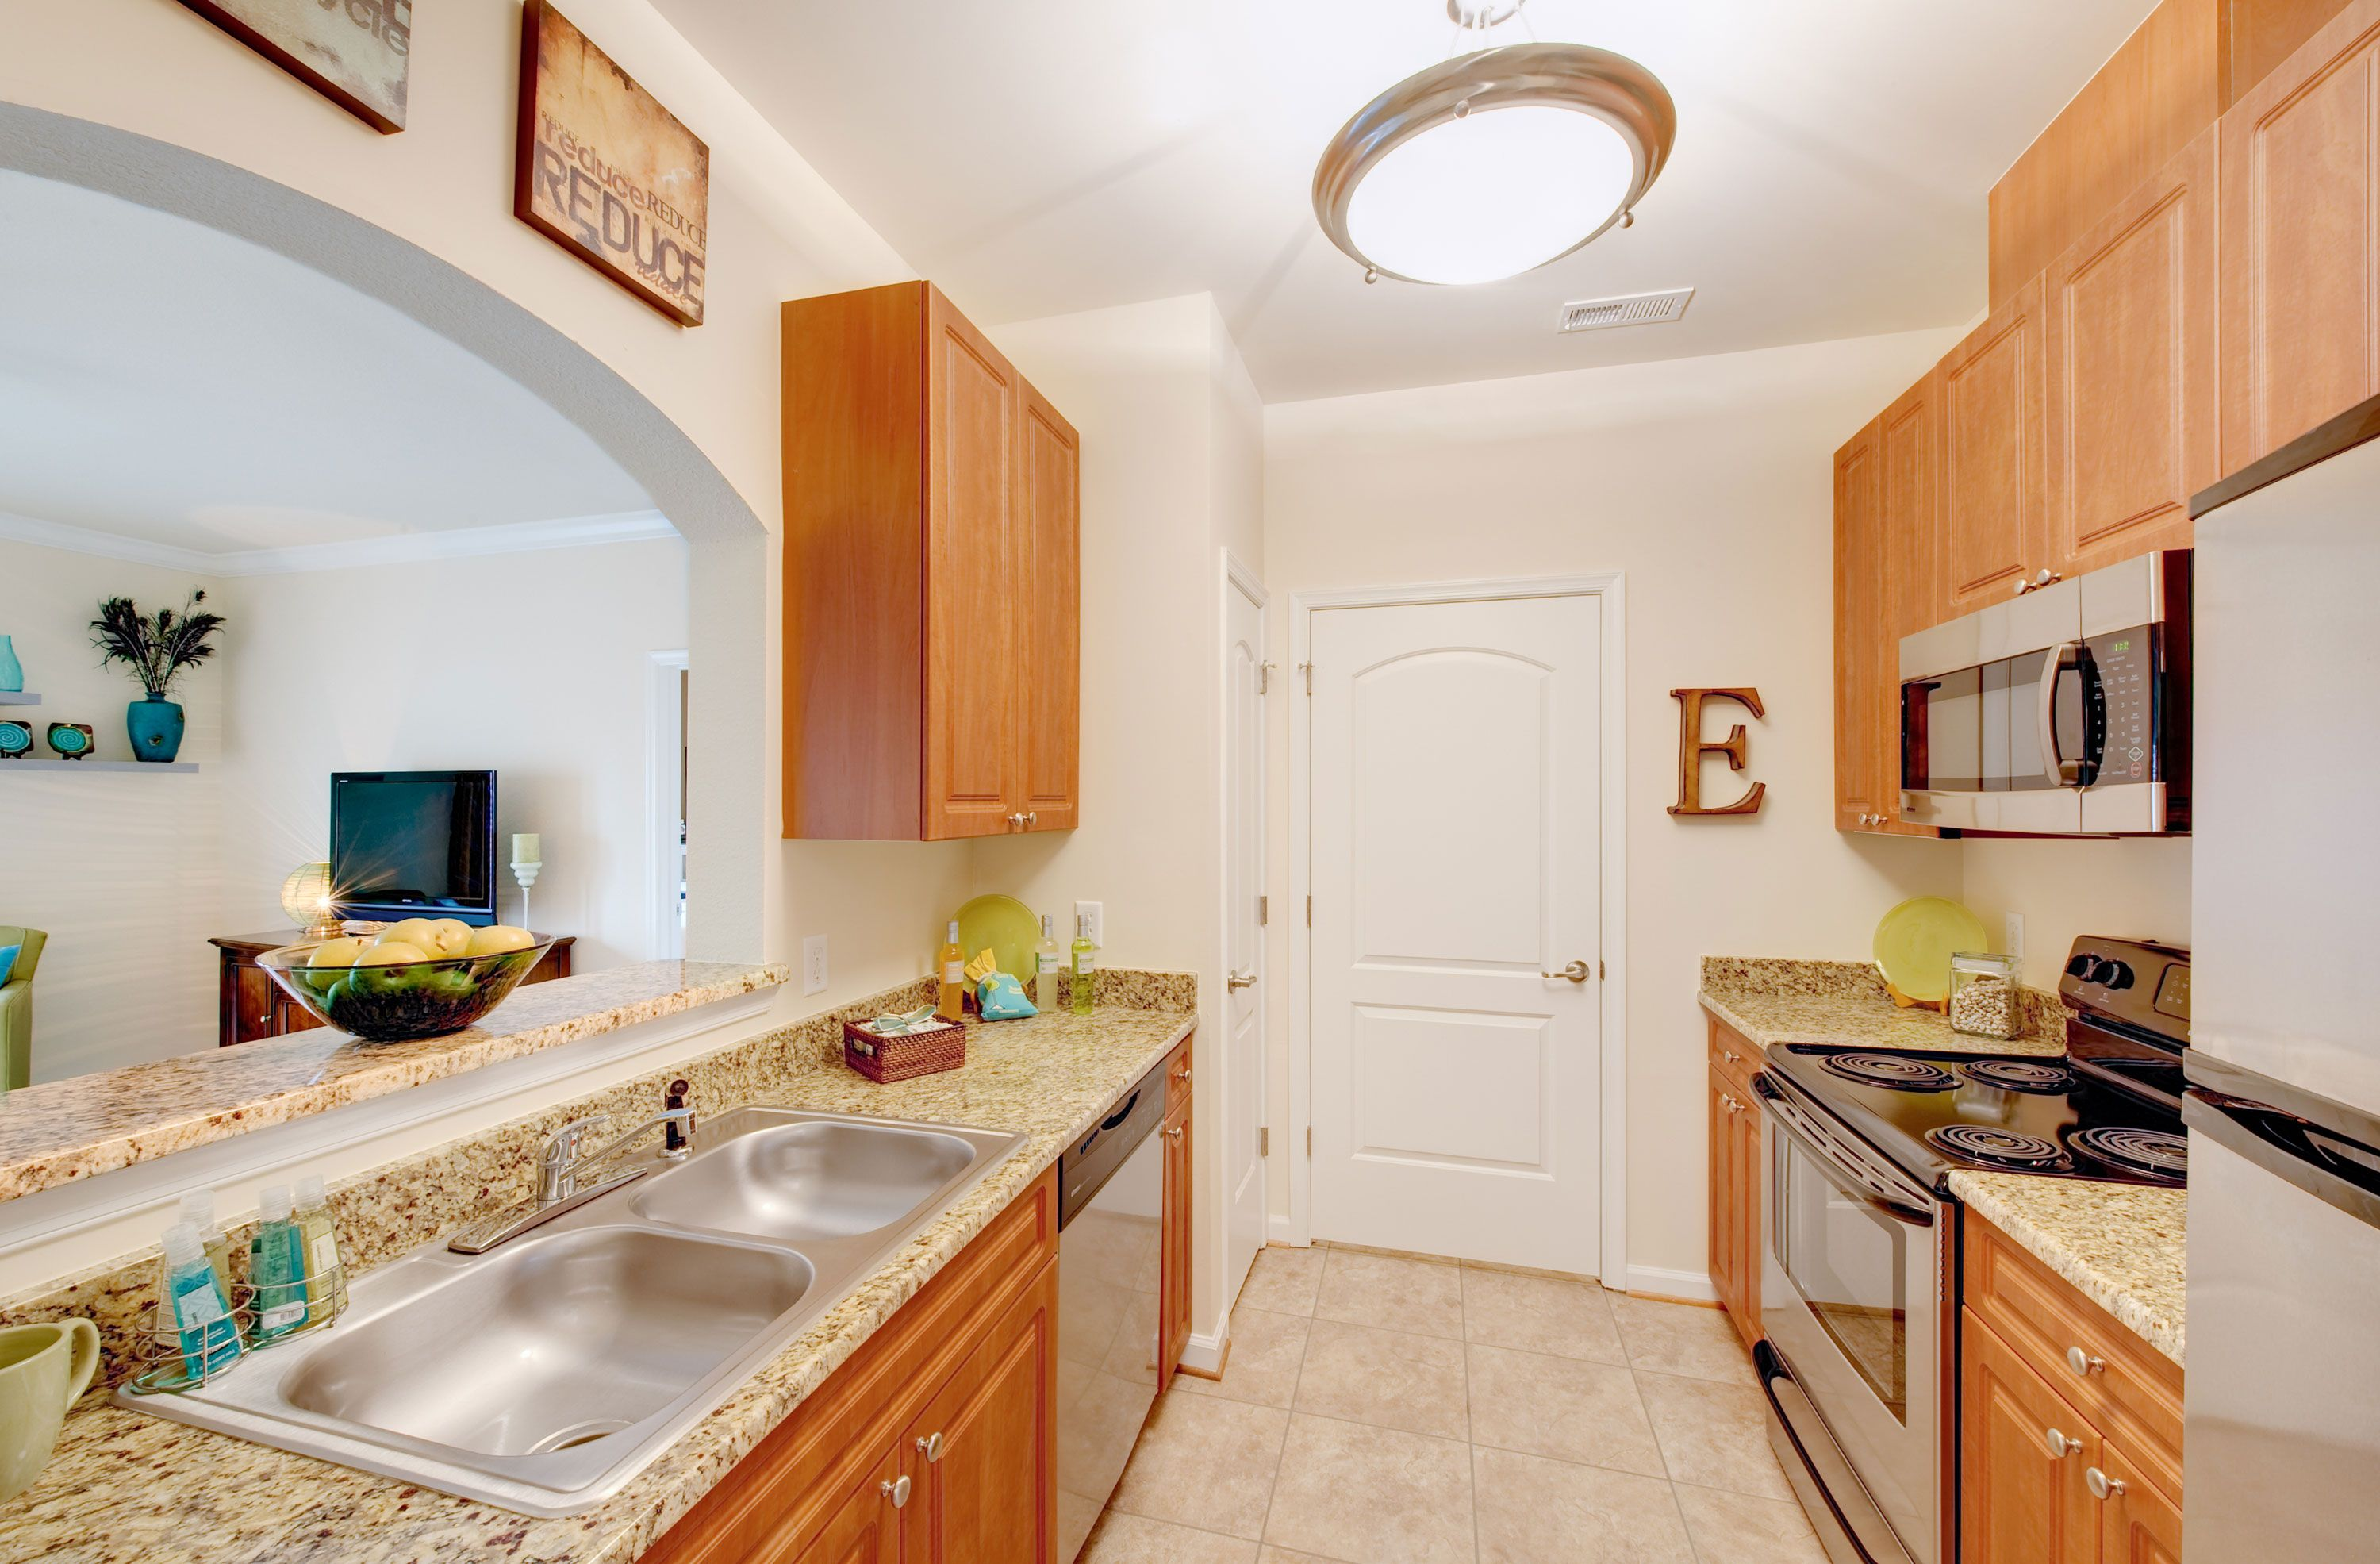 Belmont At Providence Virginia Beach Va A Premier Luxury Apartment Community Offering Oversize Luxury Apartments Apartment Communities Apartments For Rent